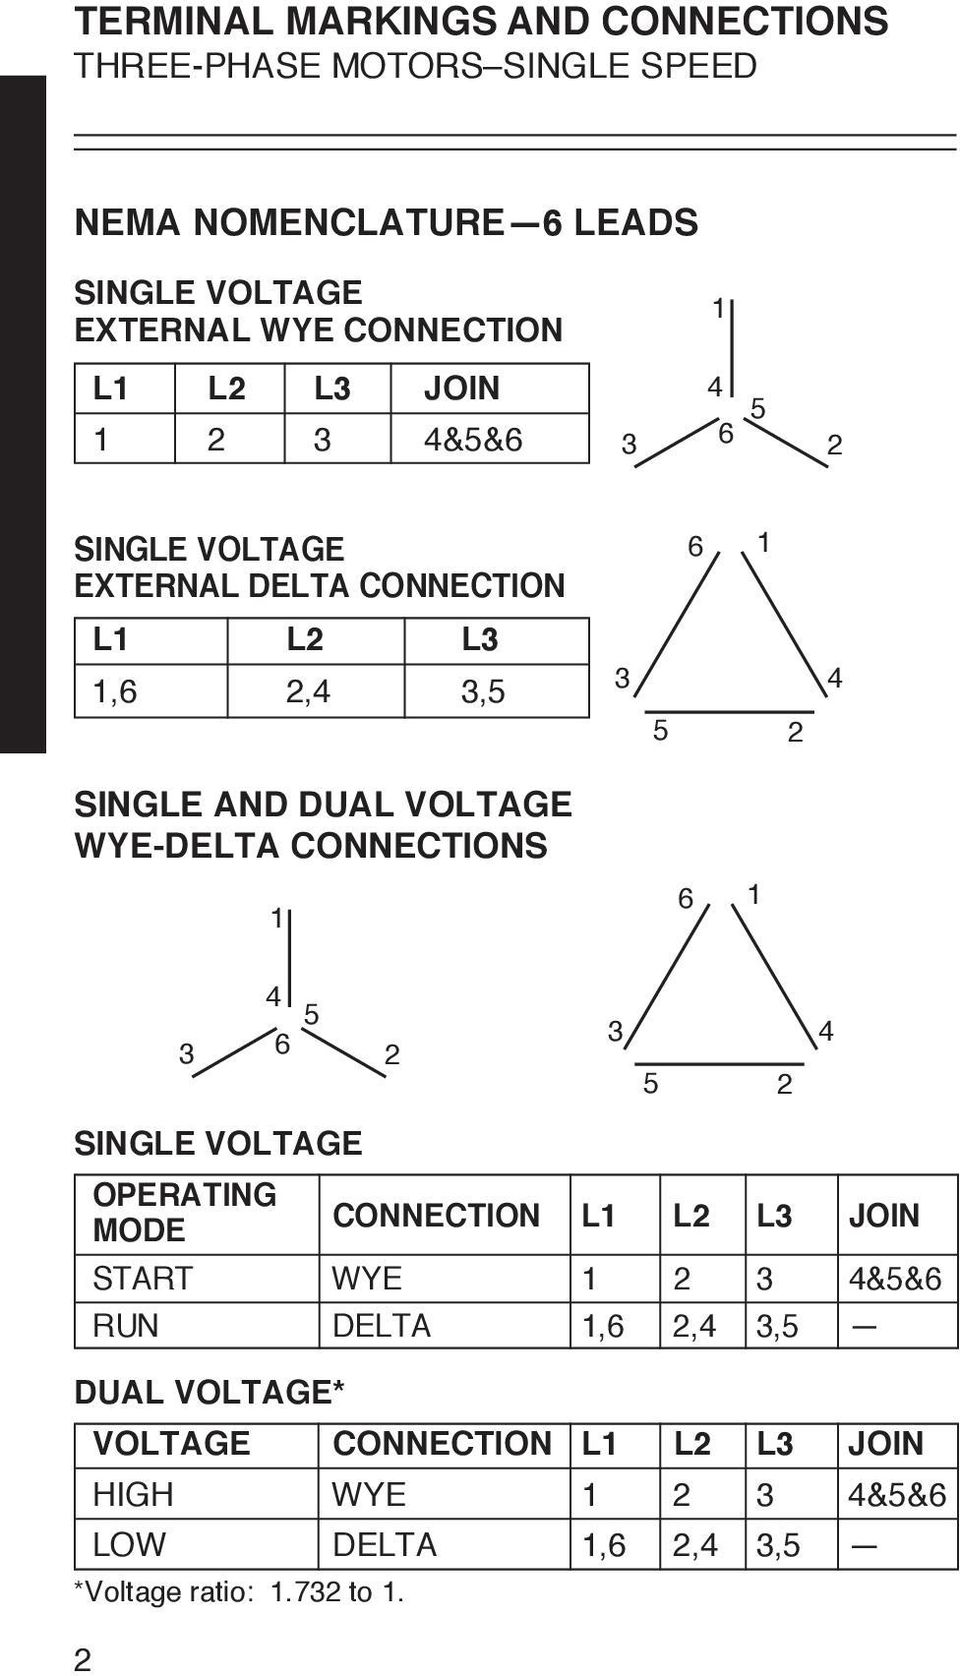 Terminal Markings And Connections Part Winding Start Pdf 7 Lead Motor Wiring Dual Voltage Wye Delta 6 Single Operating Mode Connection L L3 Join